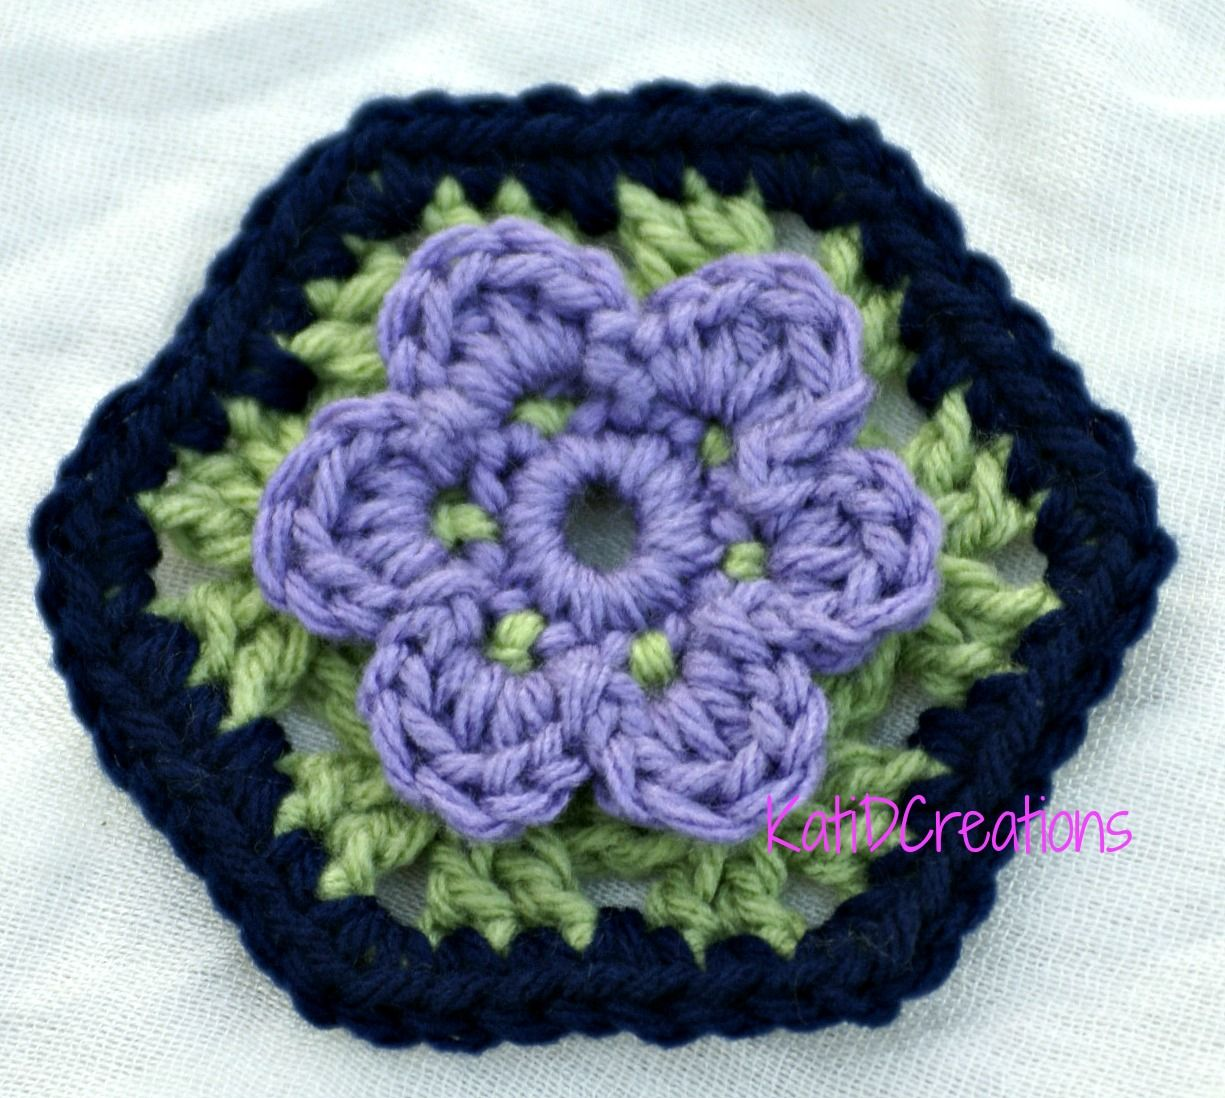 Water Lily Hexagon Granny Square by Katid Creations | CrochetHolic ...